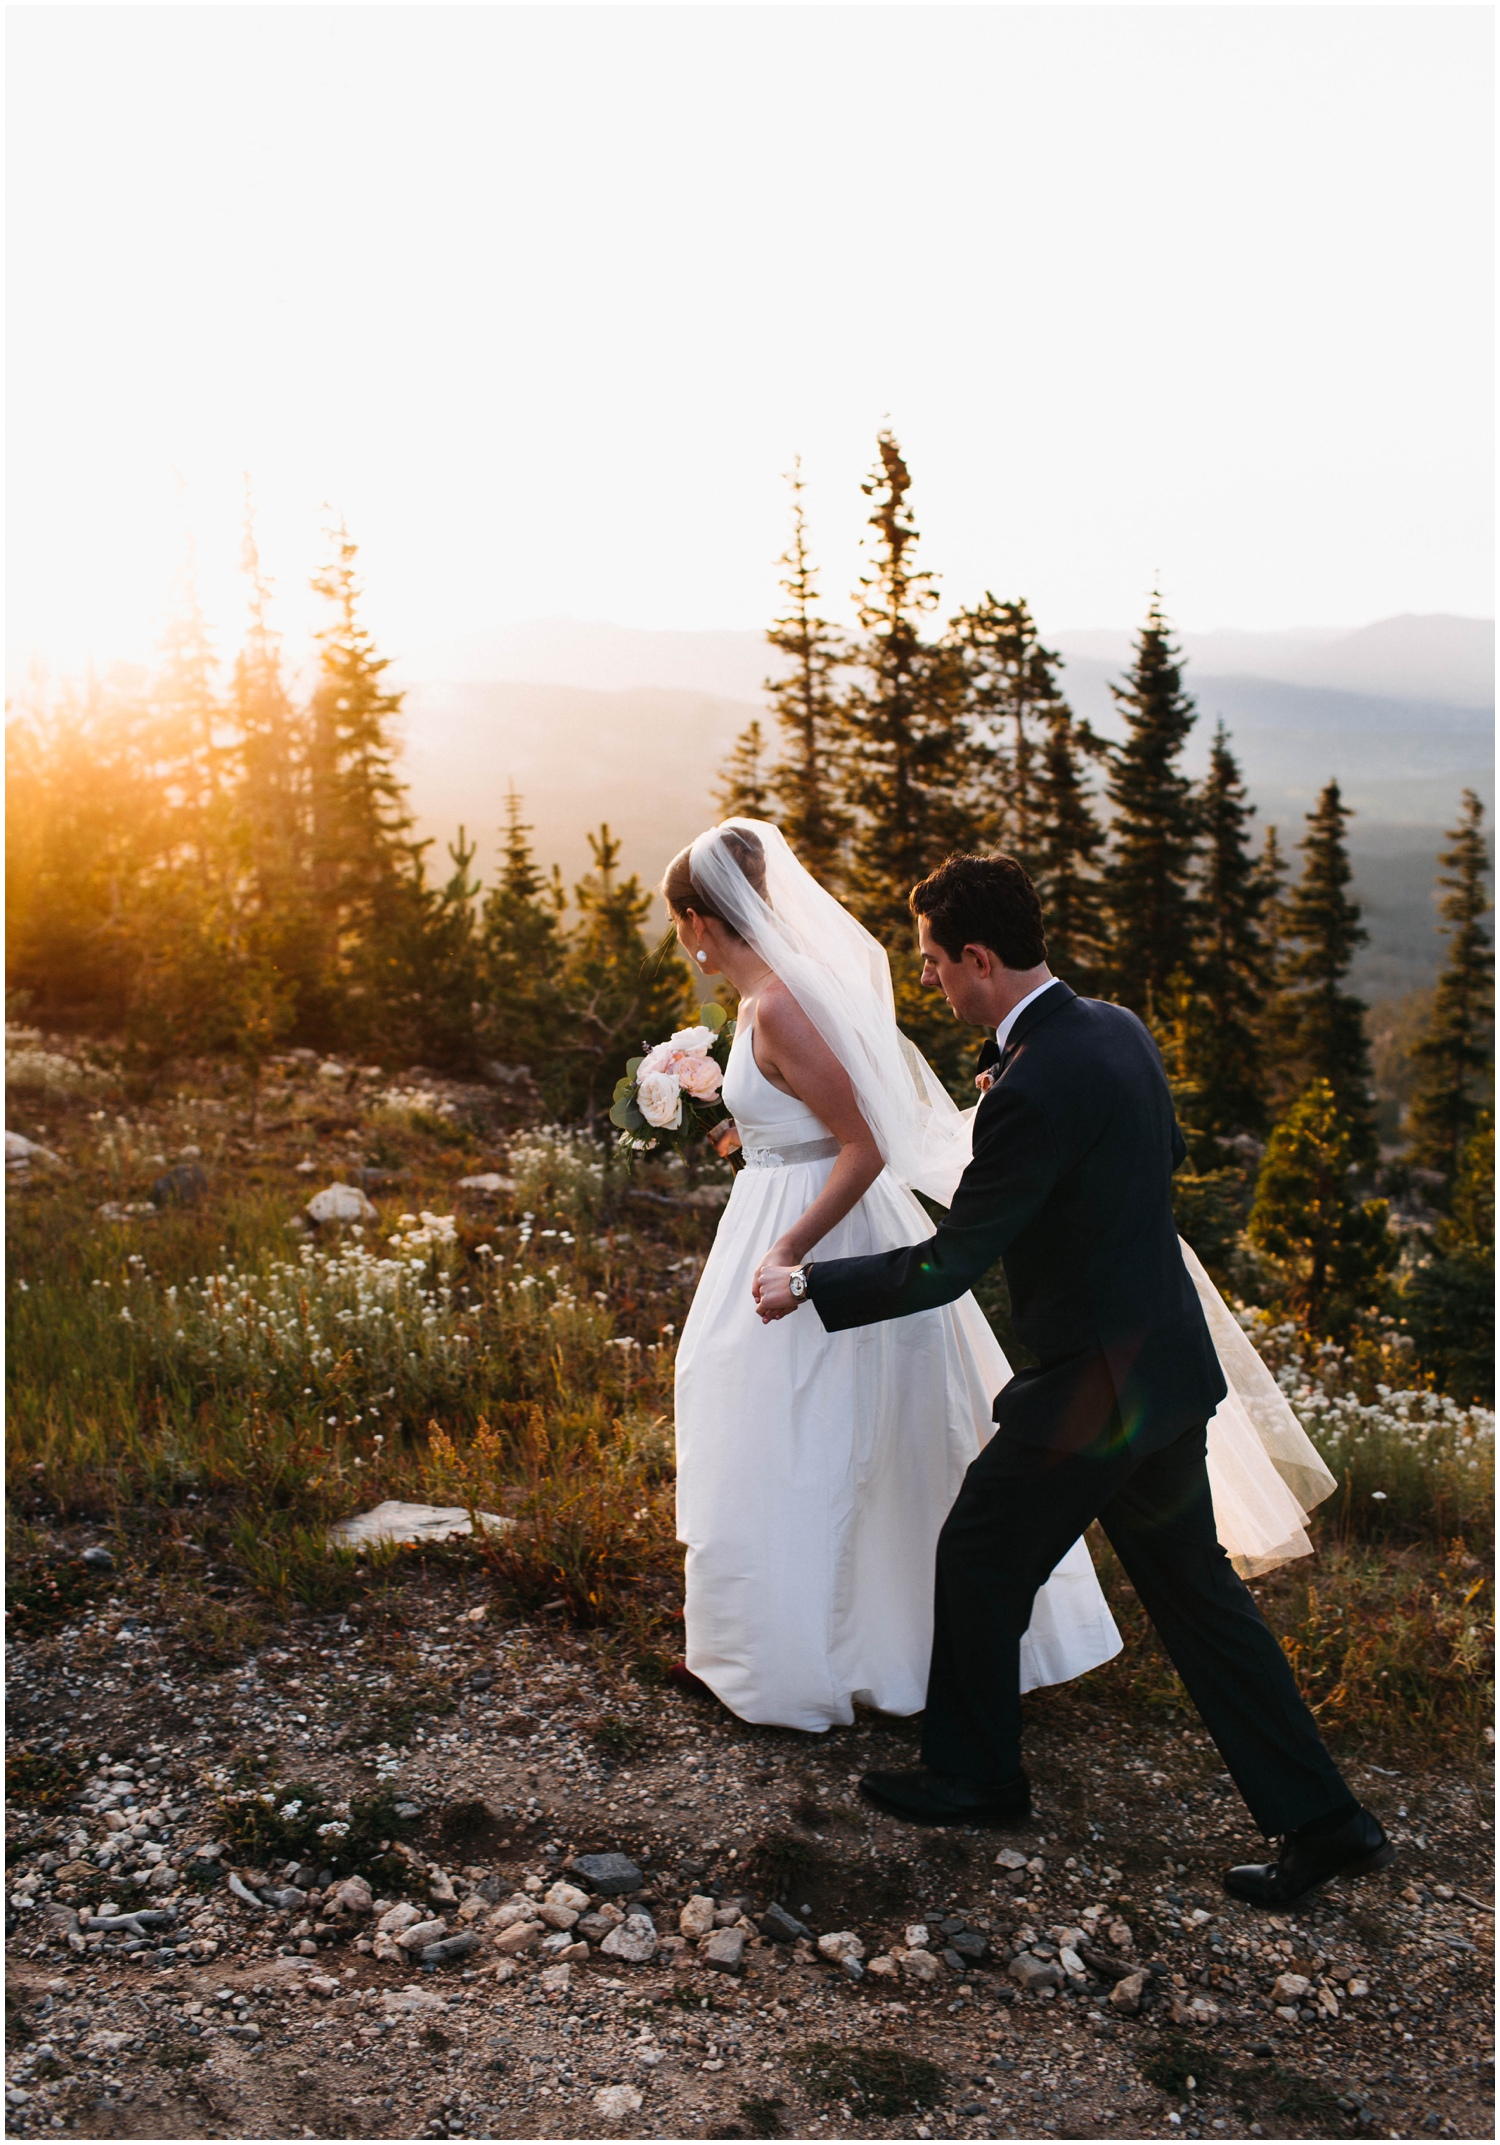 taylor_powers_best_of_2017_highlights_adventure_couple_photography_0009.jpg